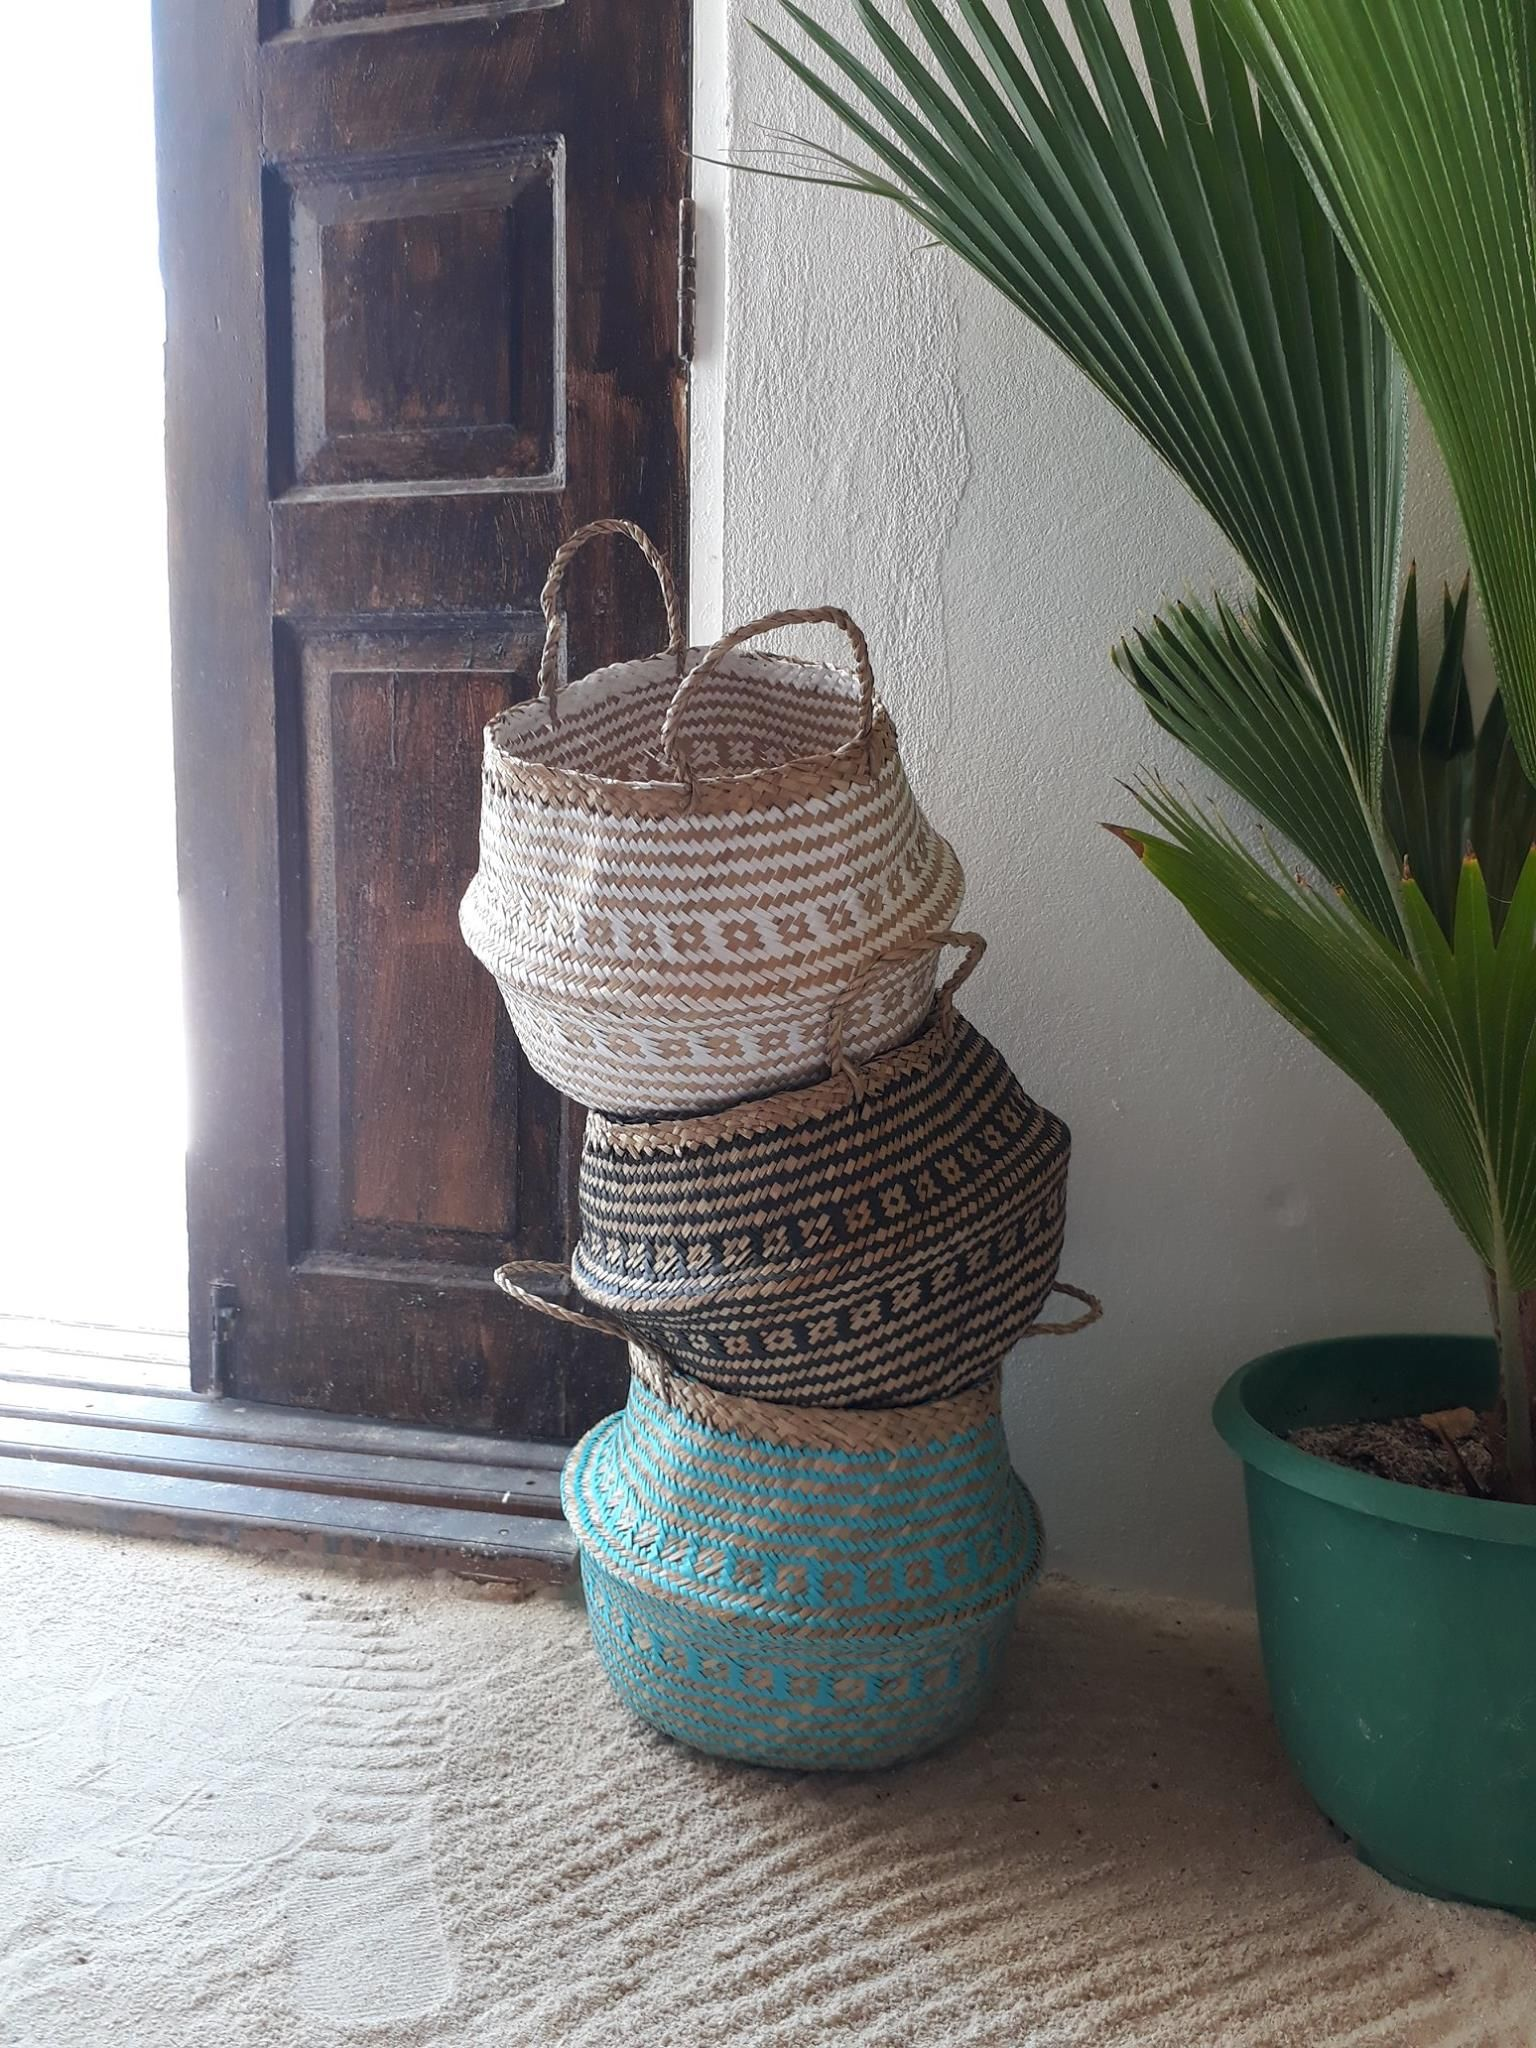 If one of your goals for this year is to organize your home, we have exactly what you are looking for! Our Rara basket, not only does it have a beautiful tribal pattern, but it's very resilient and can store plenty of things. You just have to use your imagination.